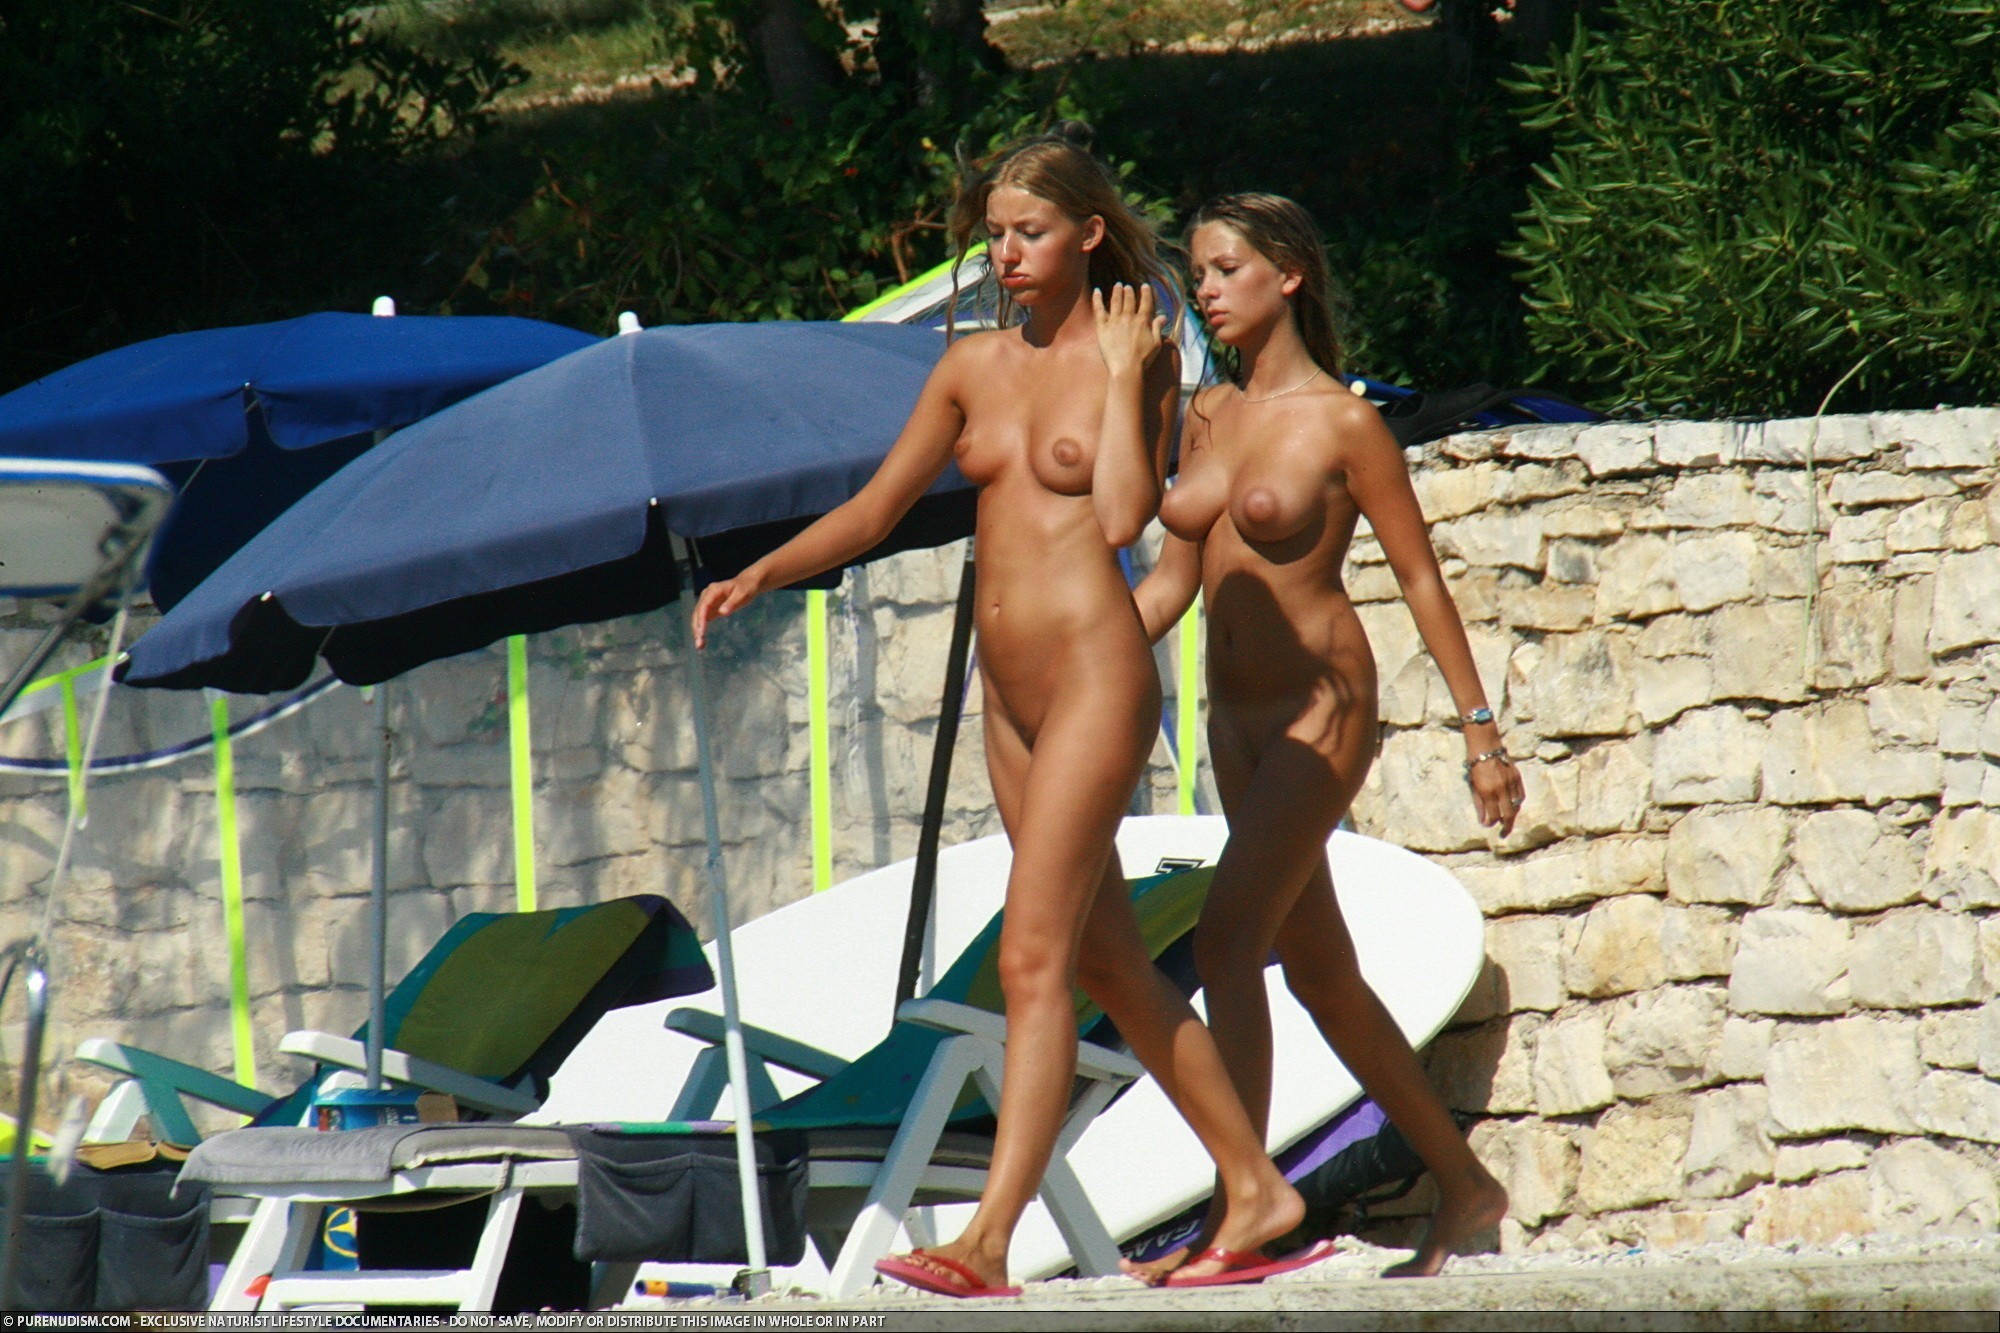 Topless nude camp, perfect girls nud